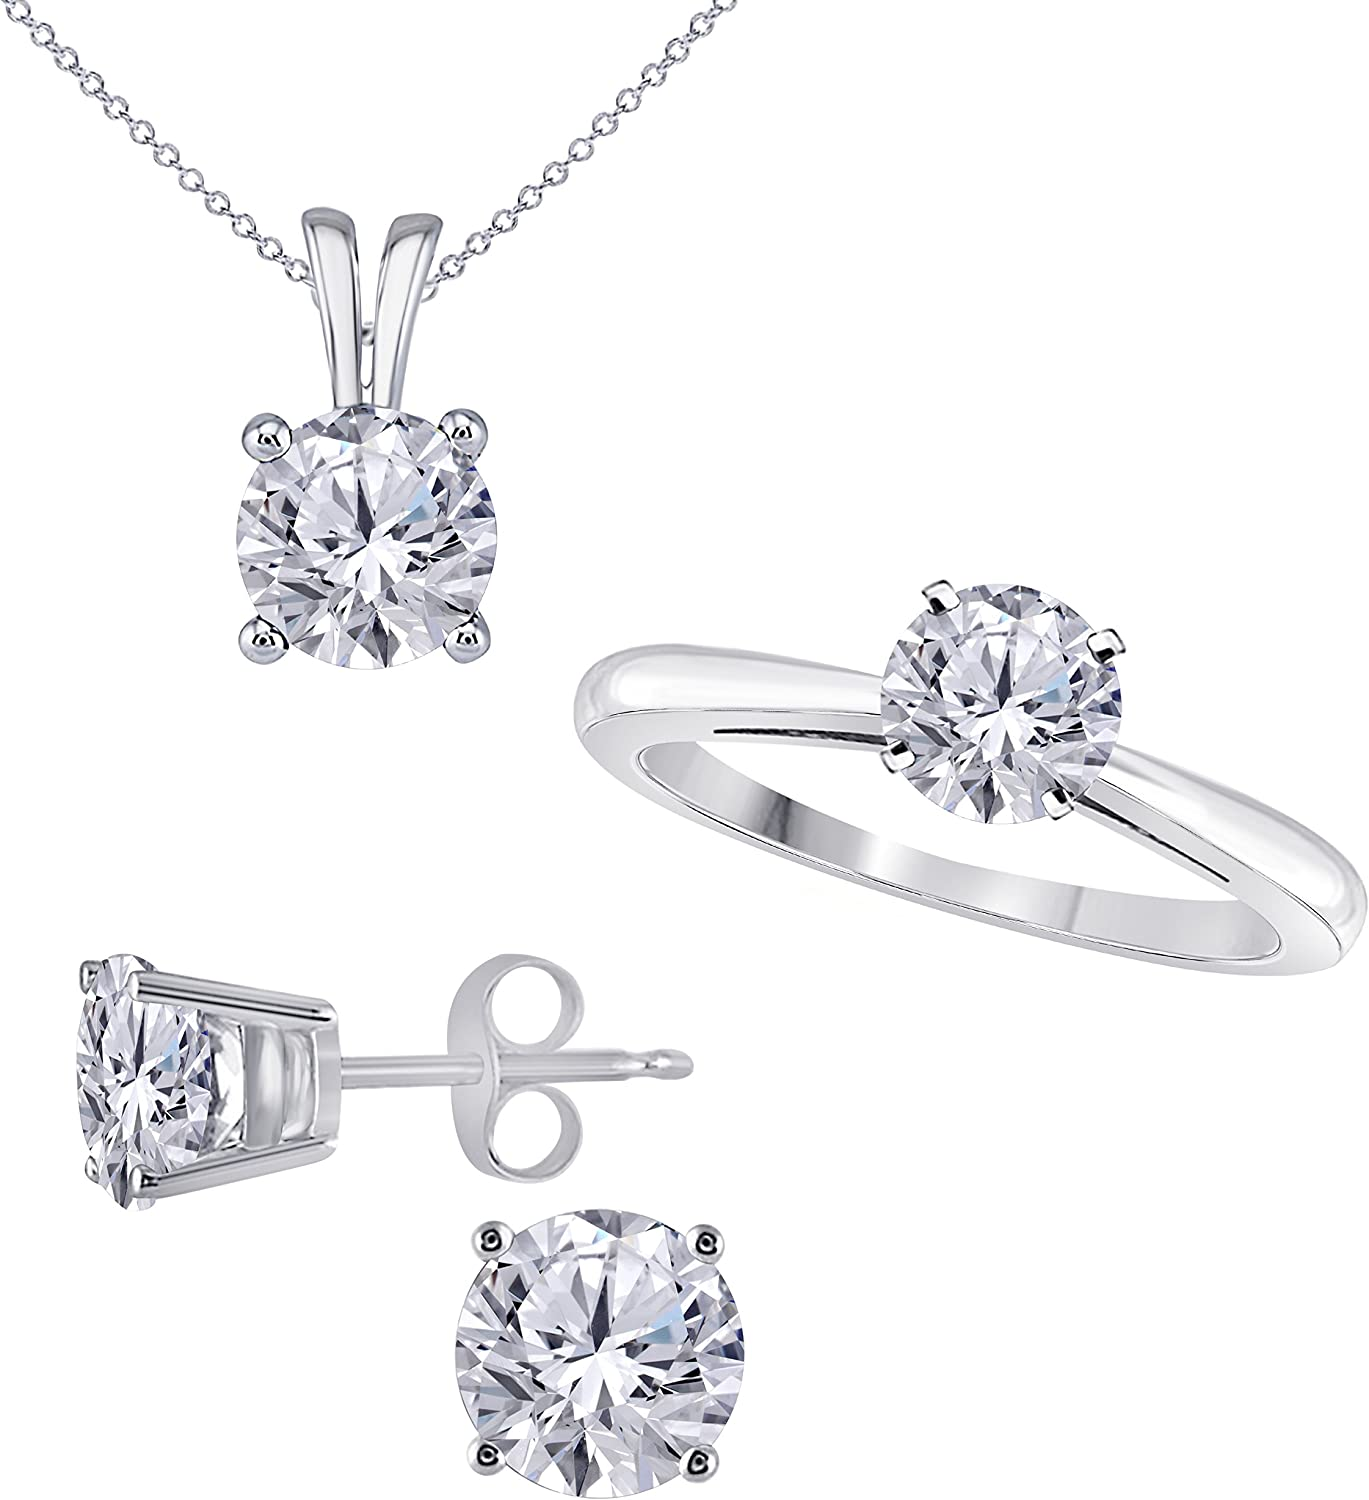 14k Gold Rhodium Plated Alloy 6 MM Round Cut Cubic Zirconia Ring, Pendant and matching Earrings Set Wedding Bridal Ring Womens Sets Jewelry